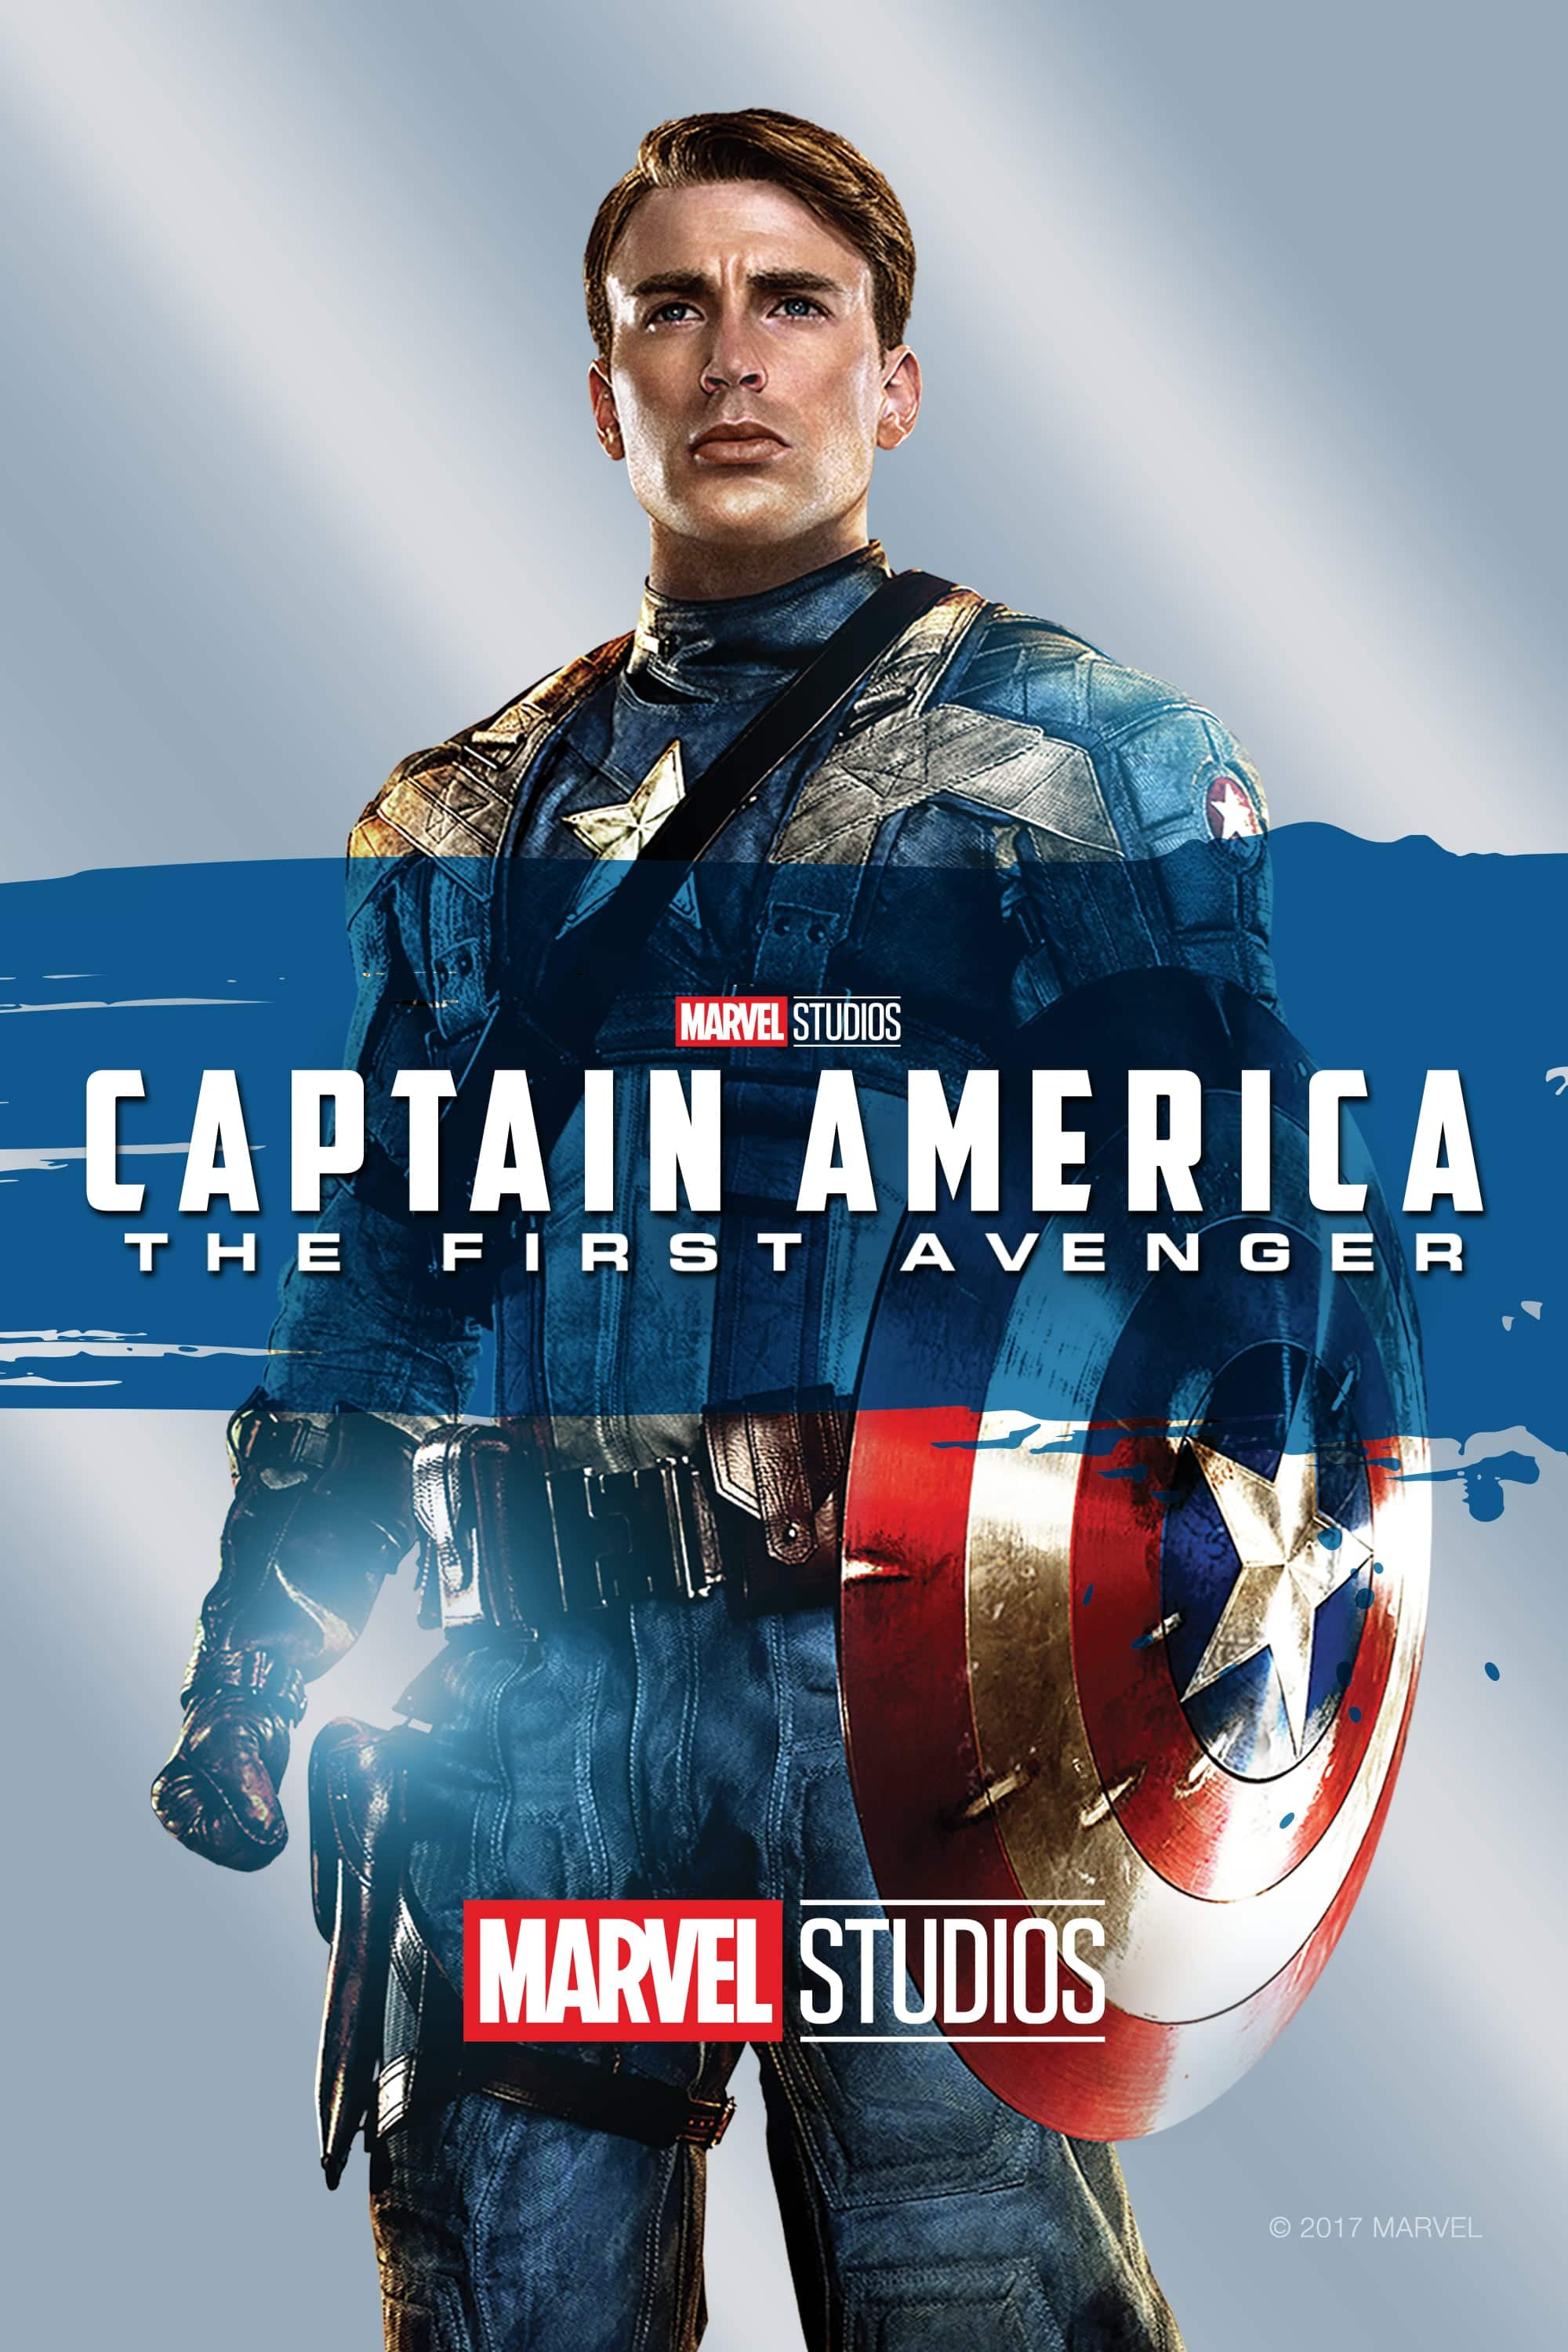 captain america poster high quality HD printable wallpapers 2011 the first avenger steve rogers